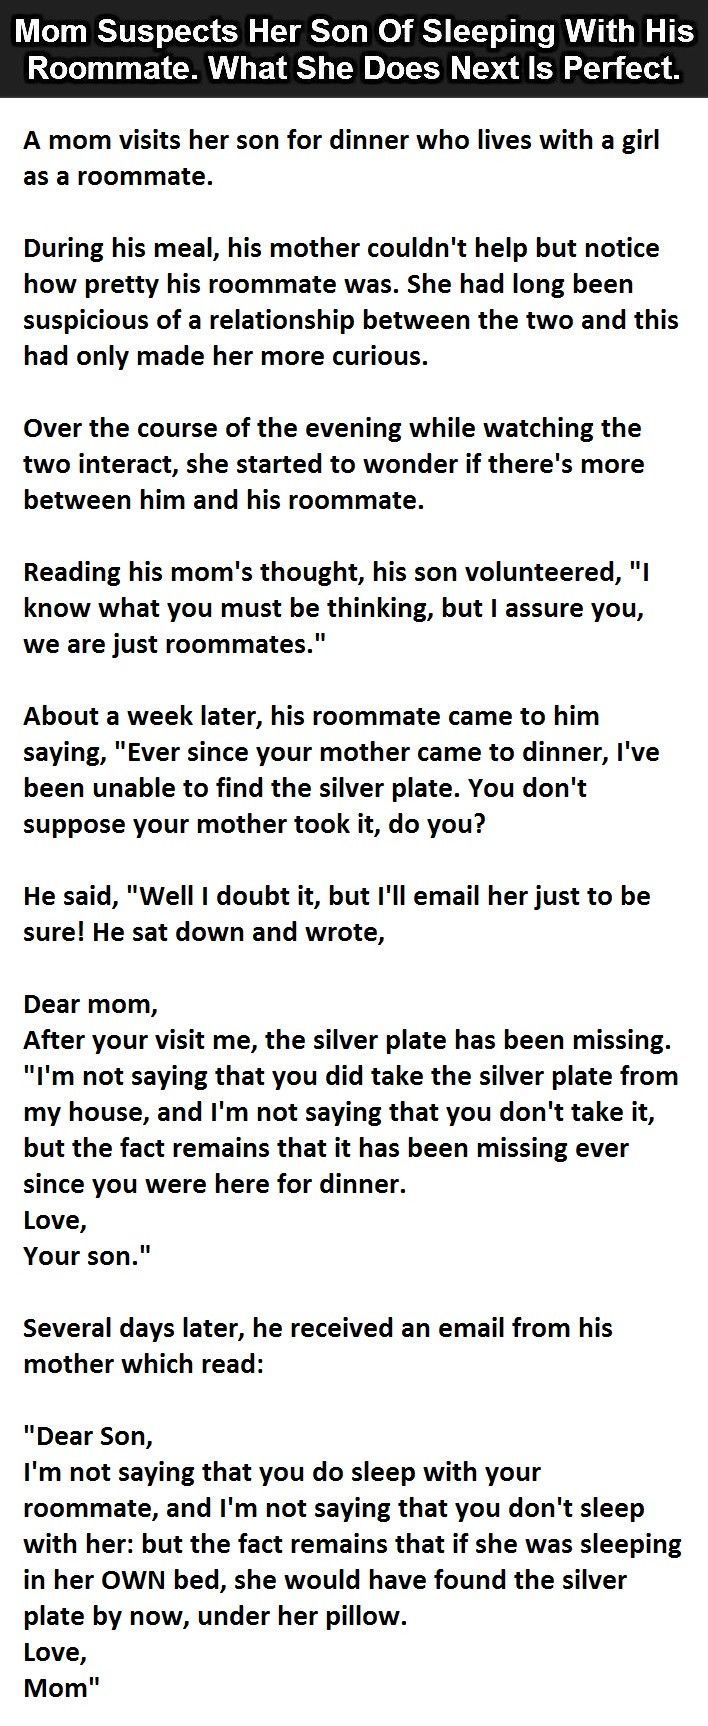 Mom Suspects Her Son Of Sleeping With His Roomate What She Does Next Is Perfect funny jokes story lol funny quote funny quotes funny sayings joke hilarious humor stories funny jokes